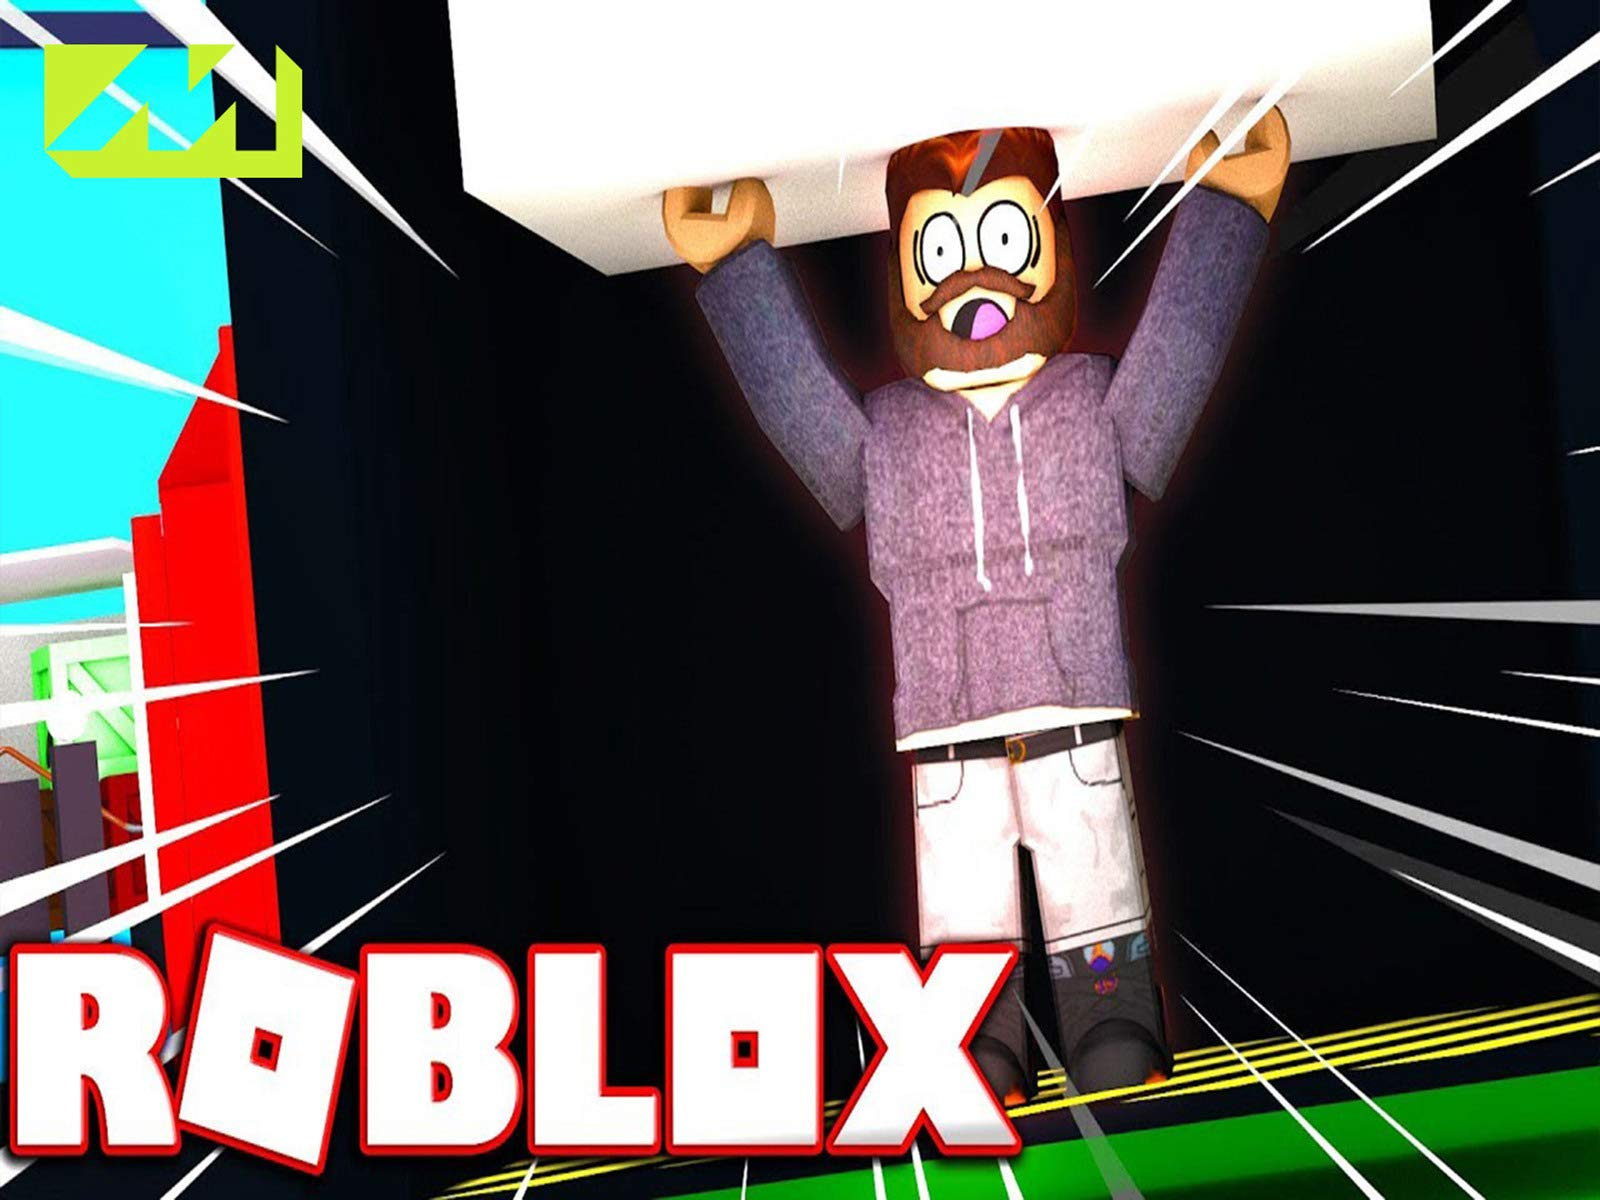 15 Best Roblox Images Spongebob Drawings Play Roblox Watch Clip Let S Play Roblox Prime Video